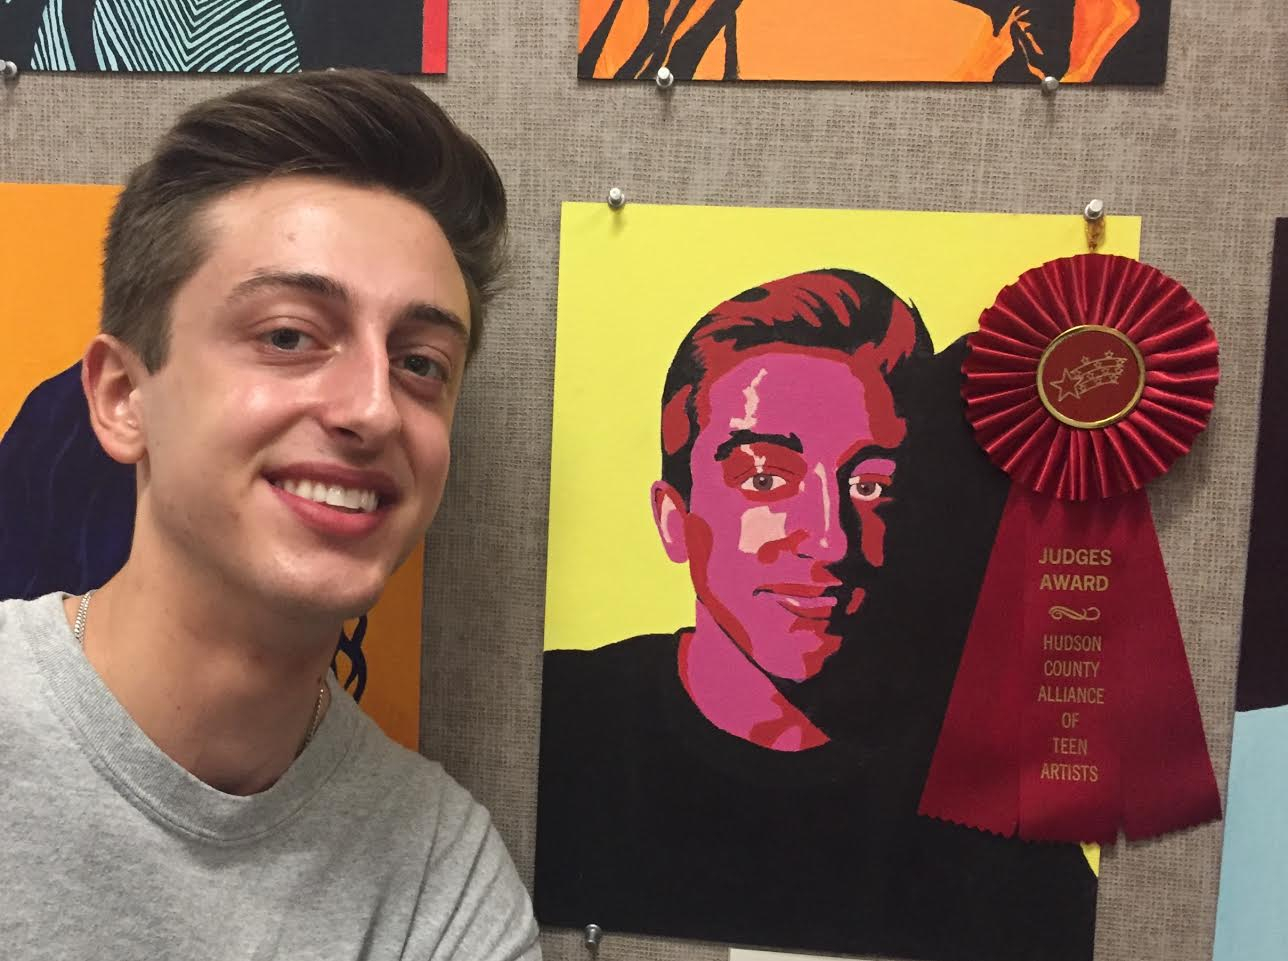 hths-Casey-Kauffmann-Judges-Award-Art-Expo-2019